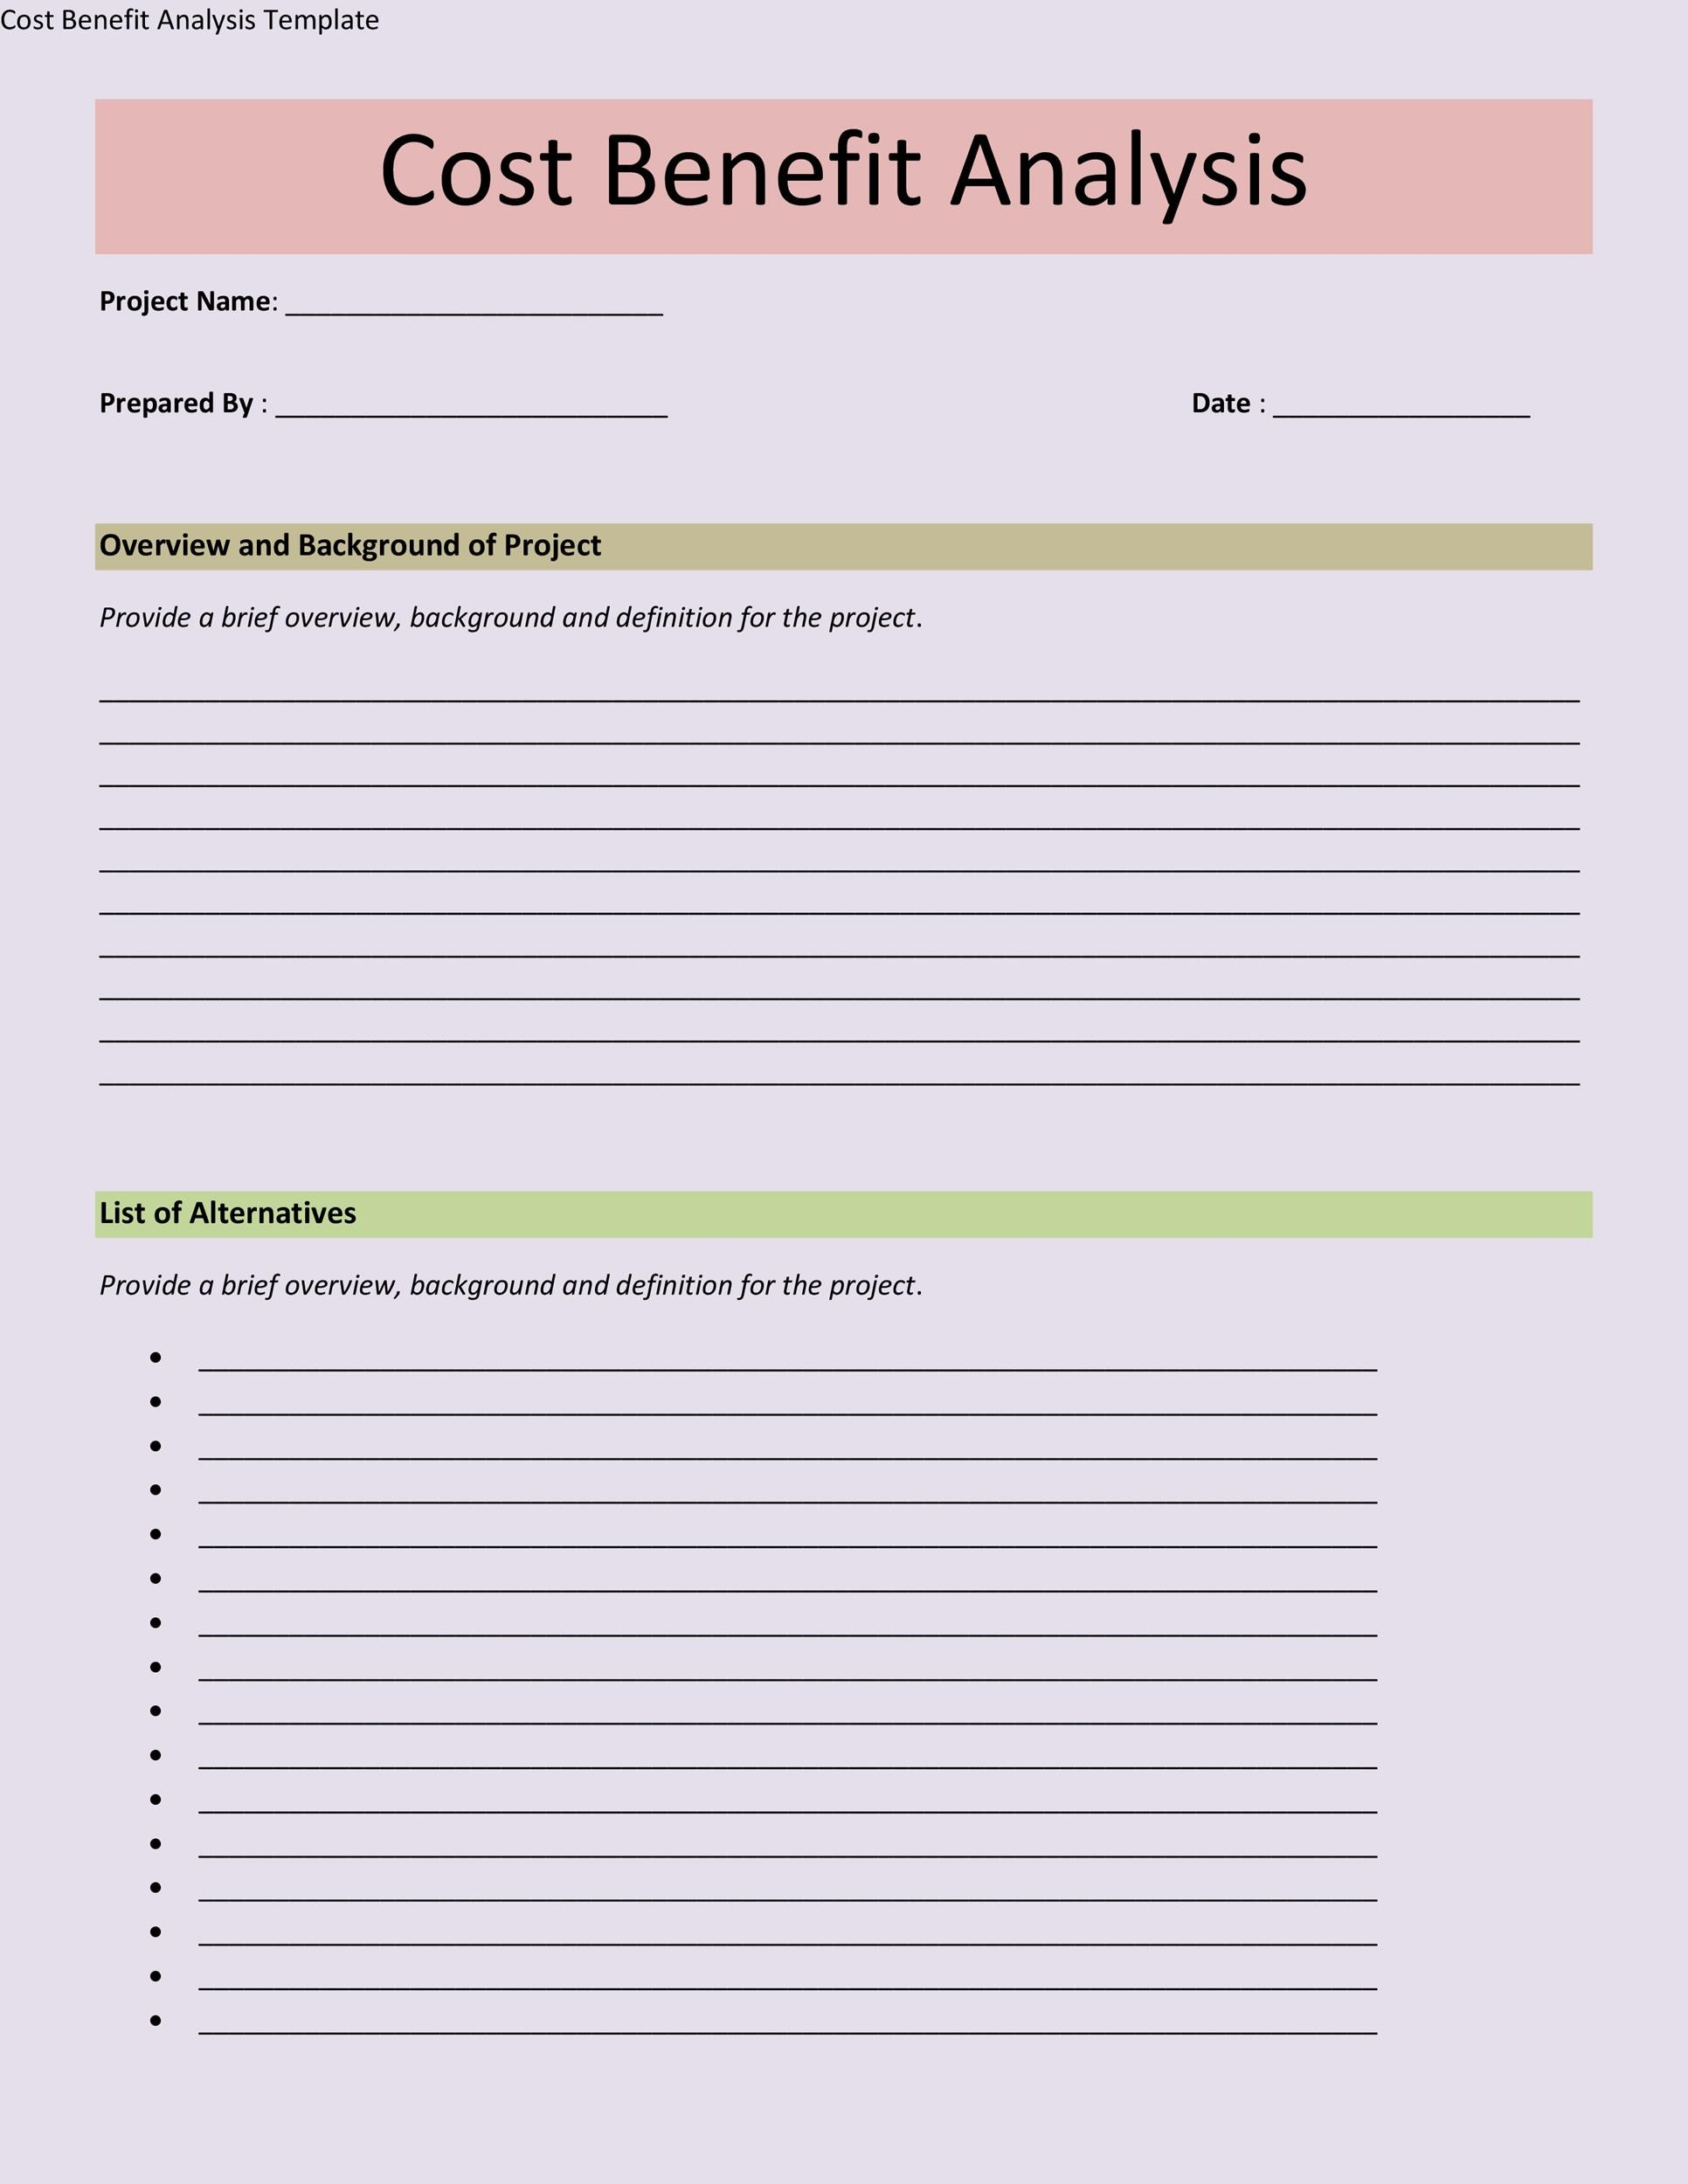 Cost Benefit Analysis Template Word